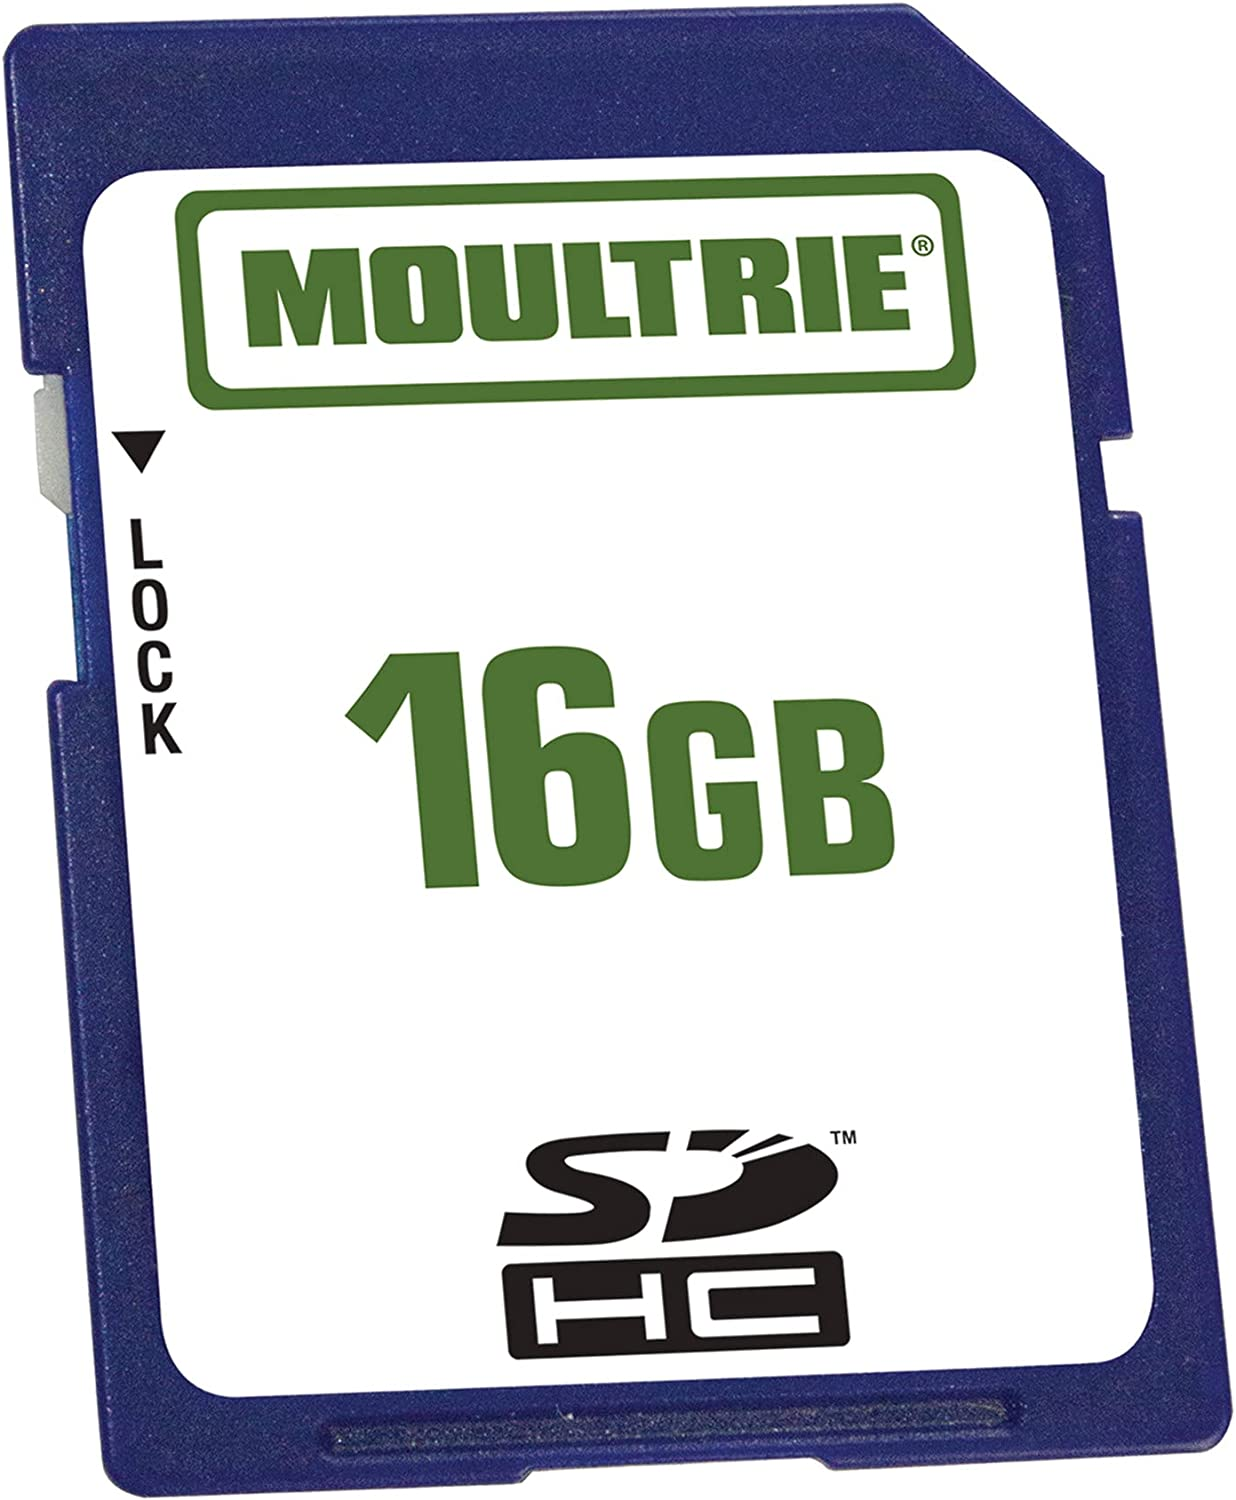 Moultrie 16GB SD Memory Card